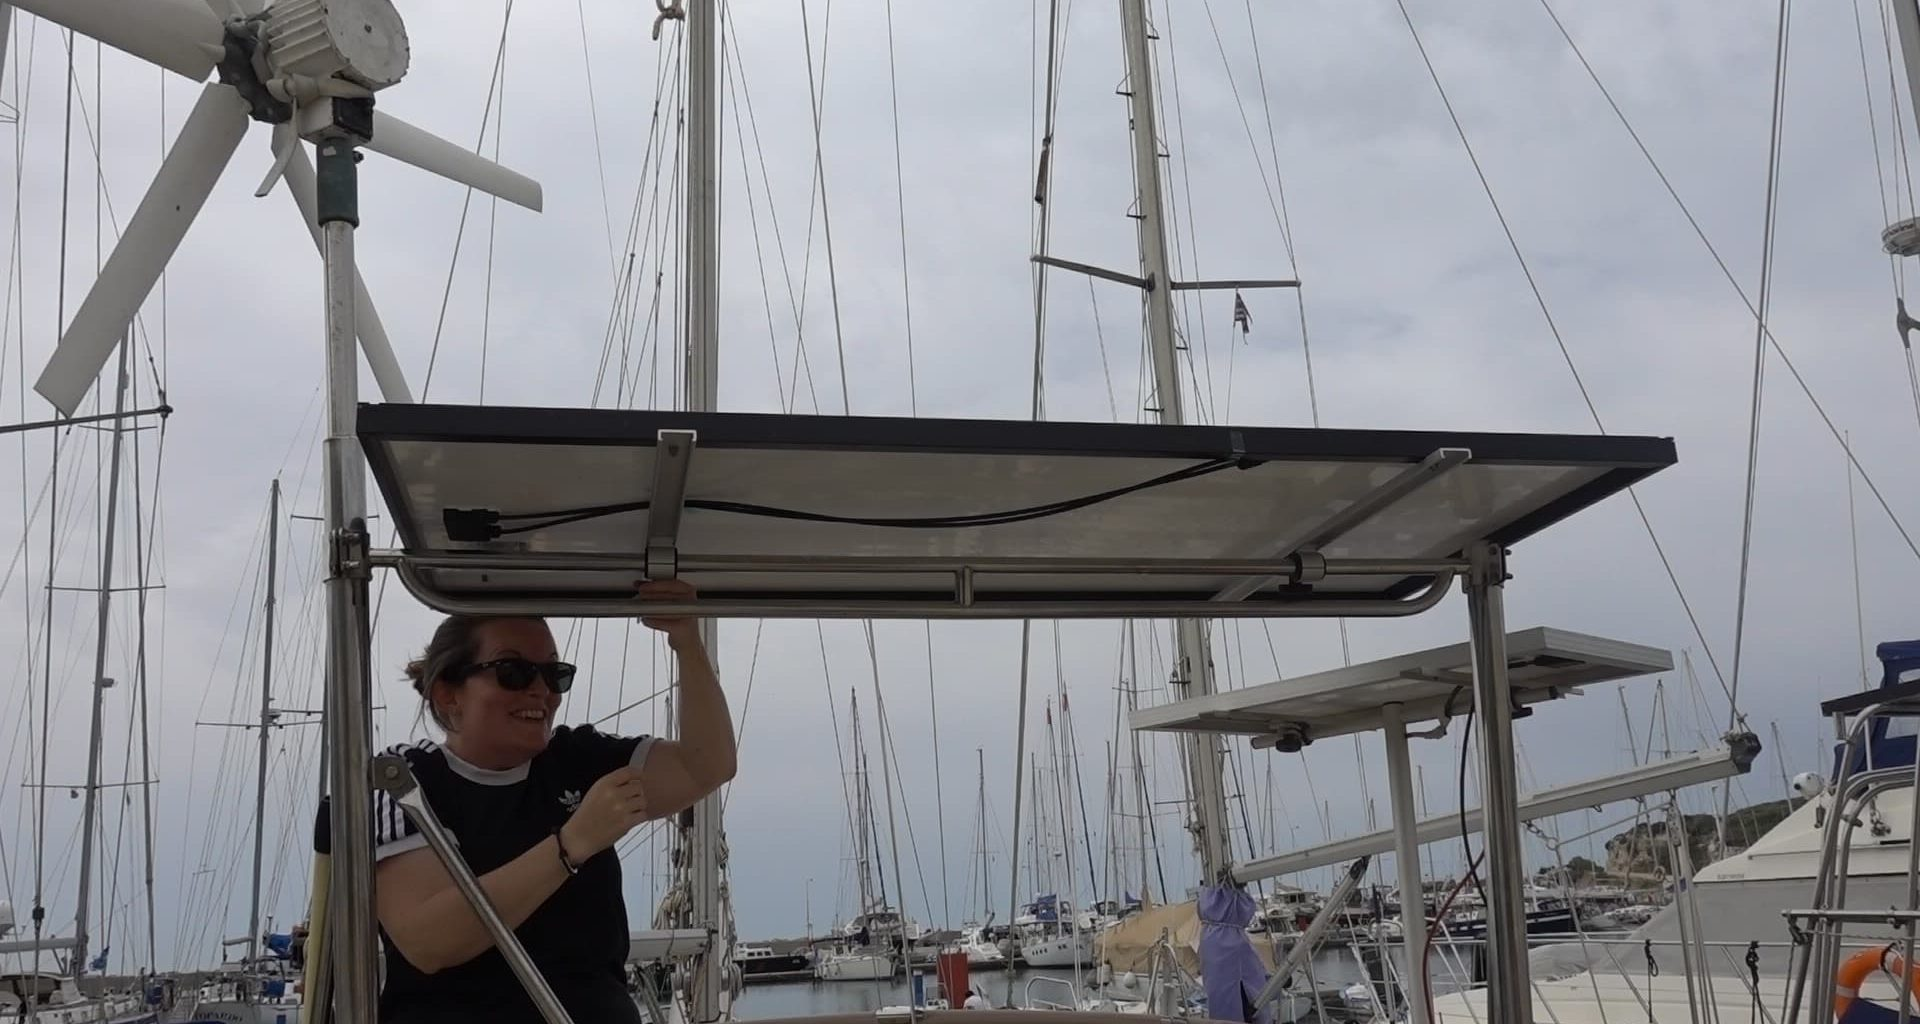 solar panel installation on a sailboat steel arch